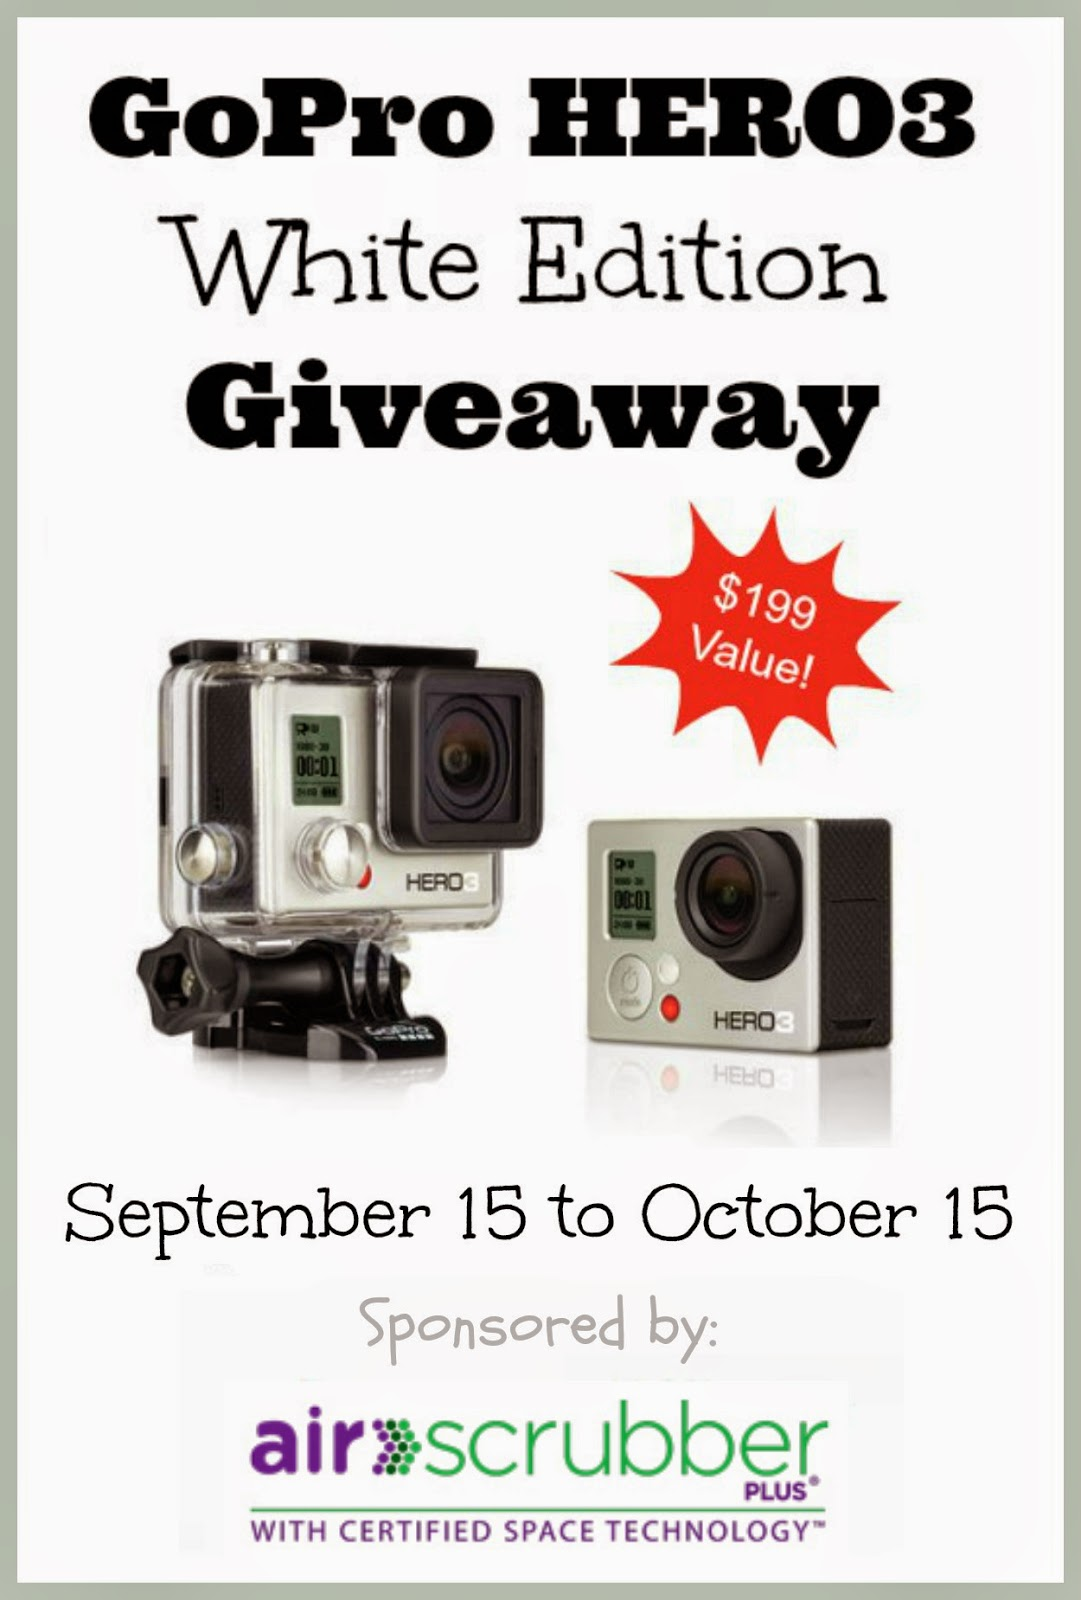 GoPro Hero3 Camera Giveaway